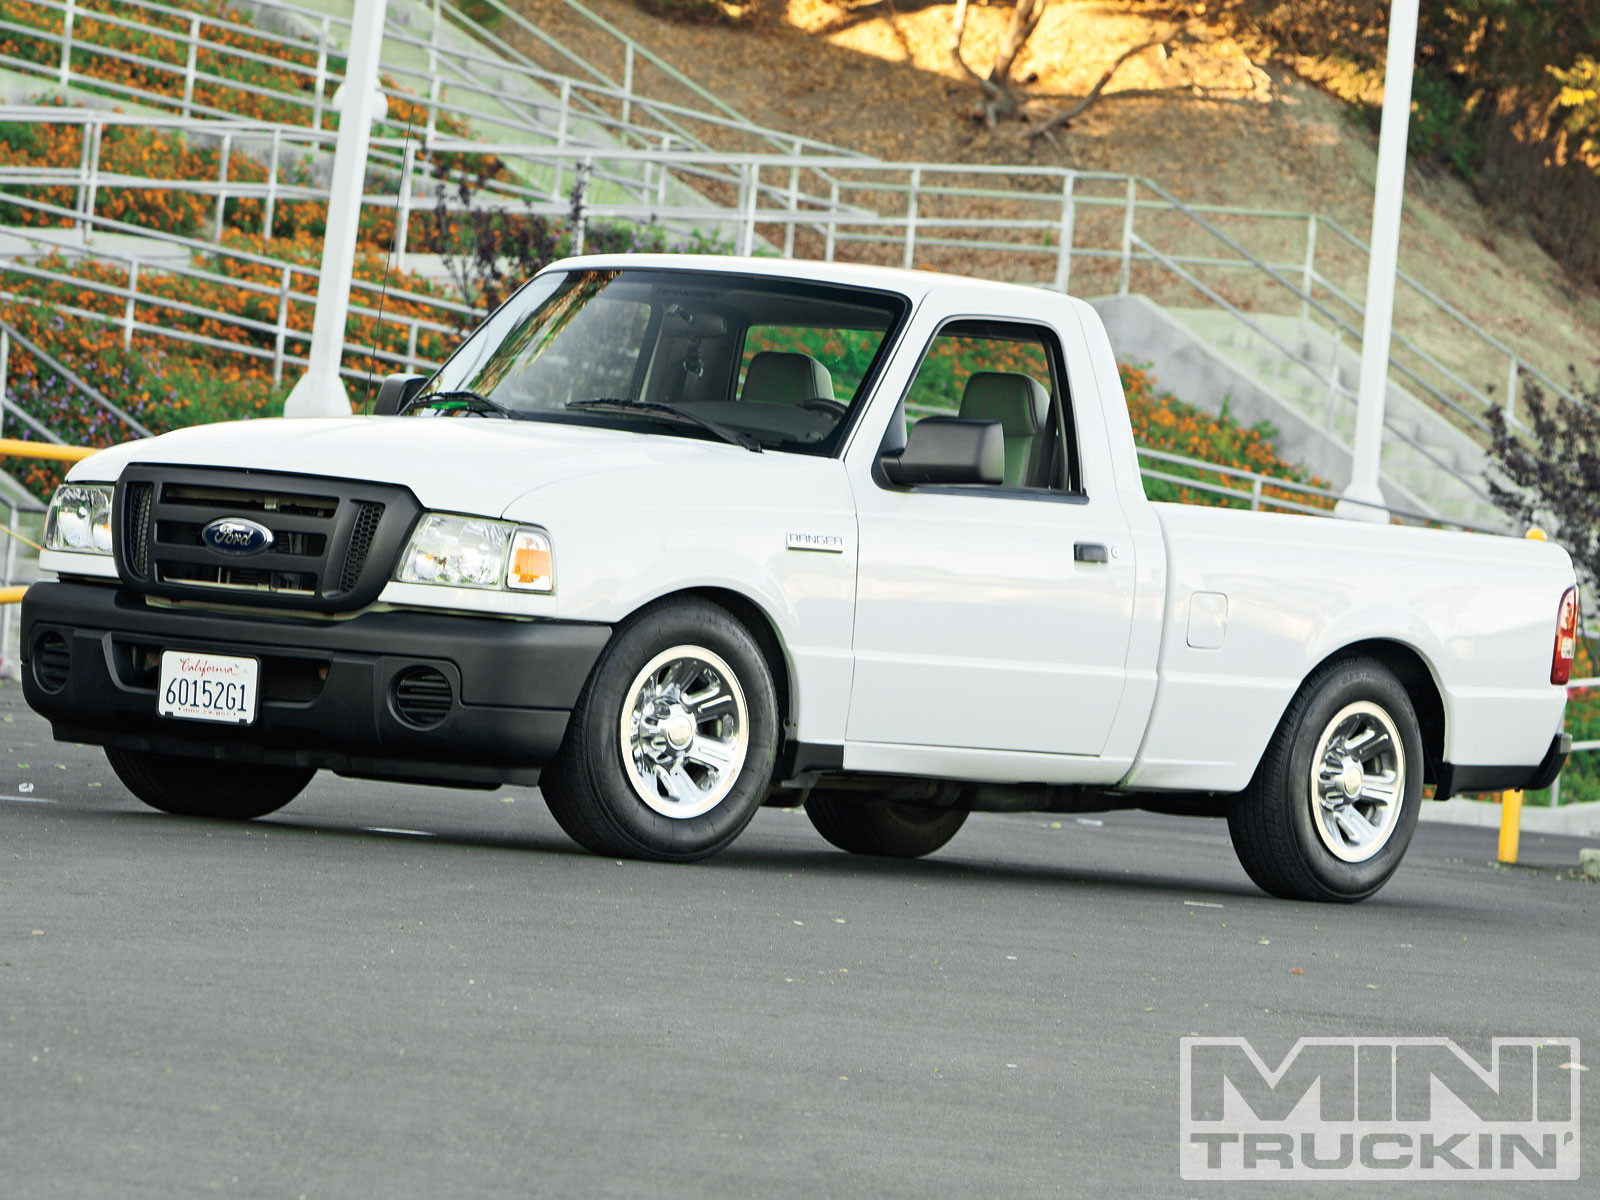 2009 Ford Ranger - Flattened Ford